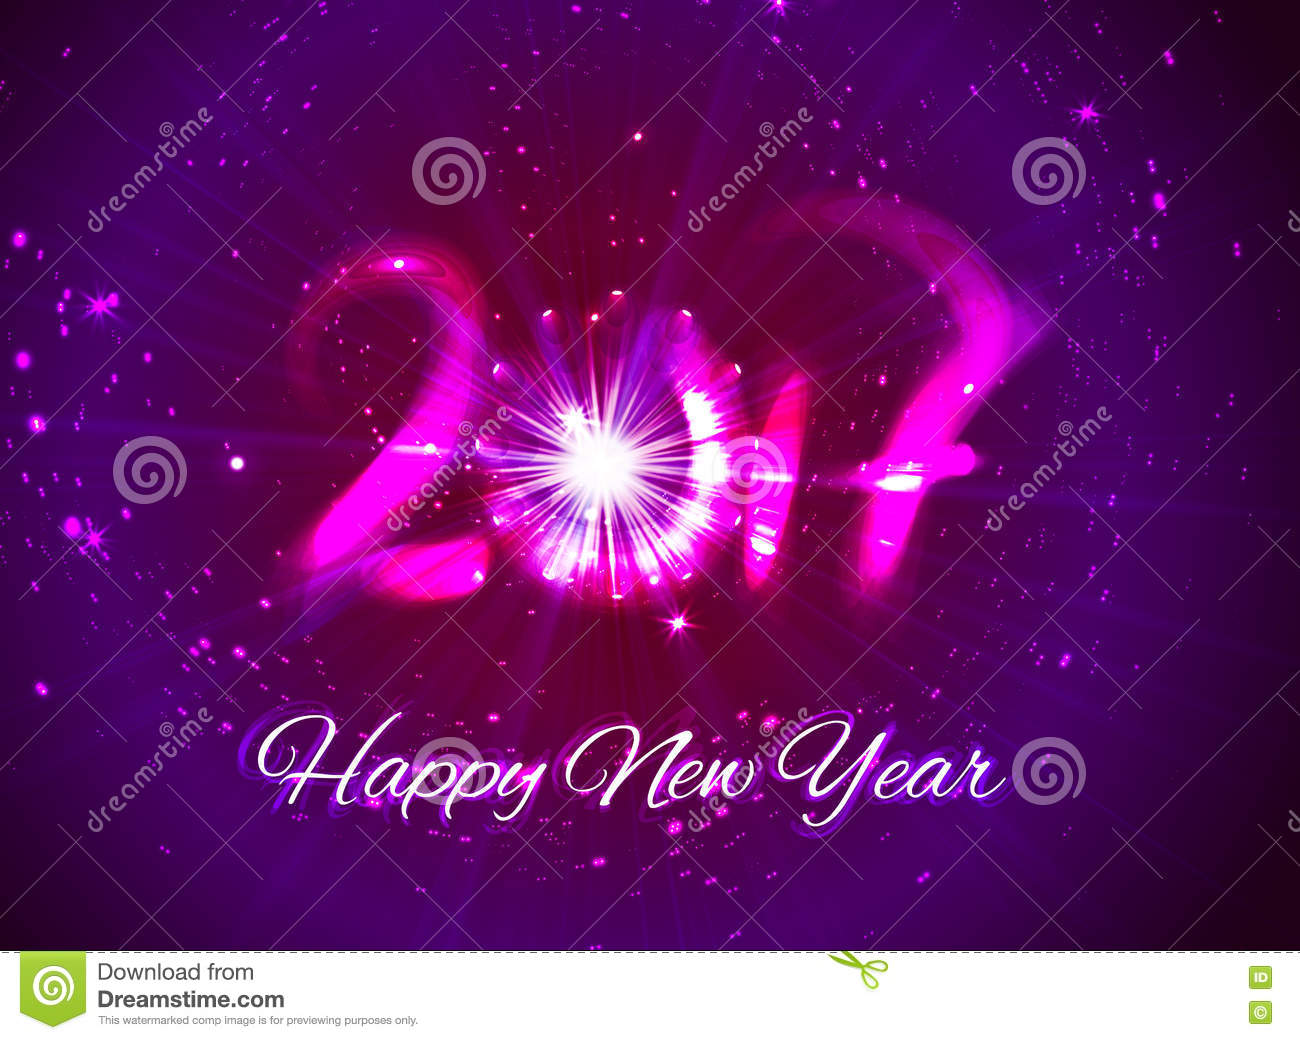 Happy New Year 2017 Greeting Card Design For You Stock Vector